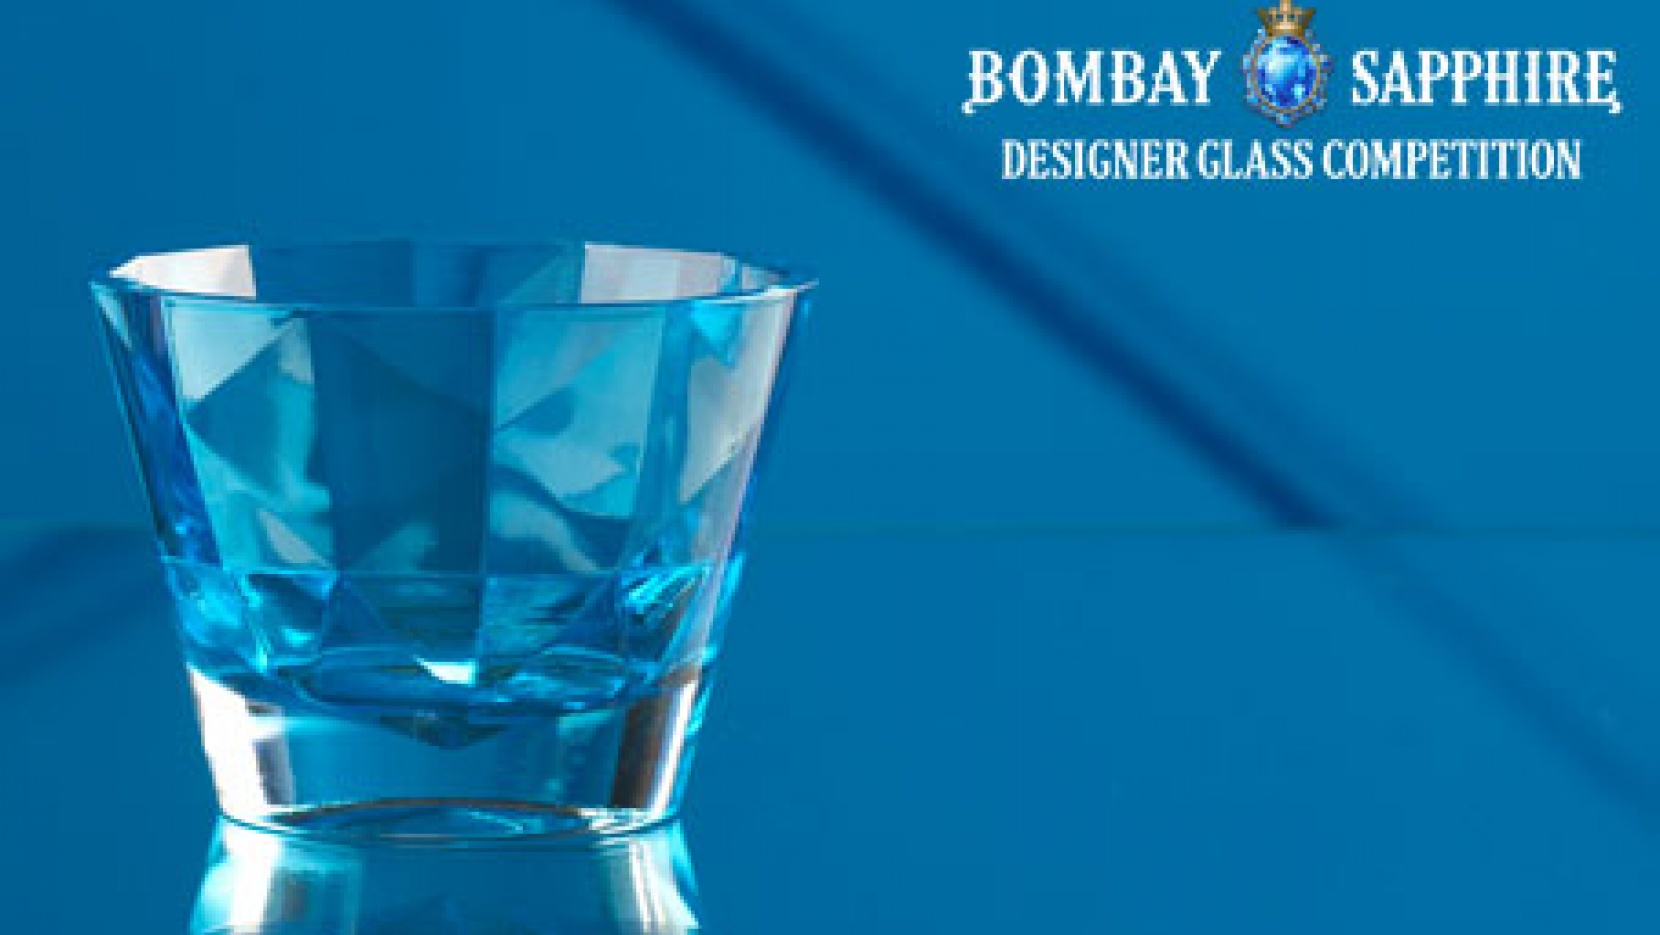 Bombay Sapphire Designer Glass Competition 2009 Yatzer